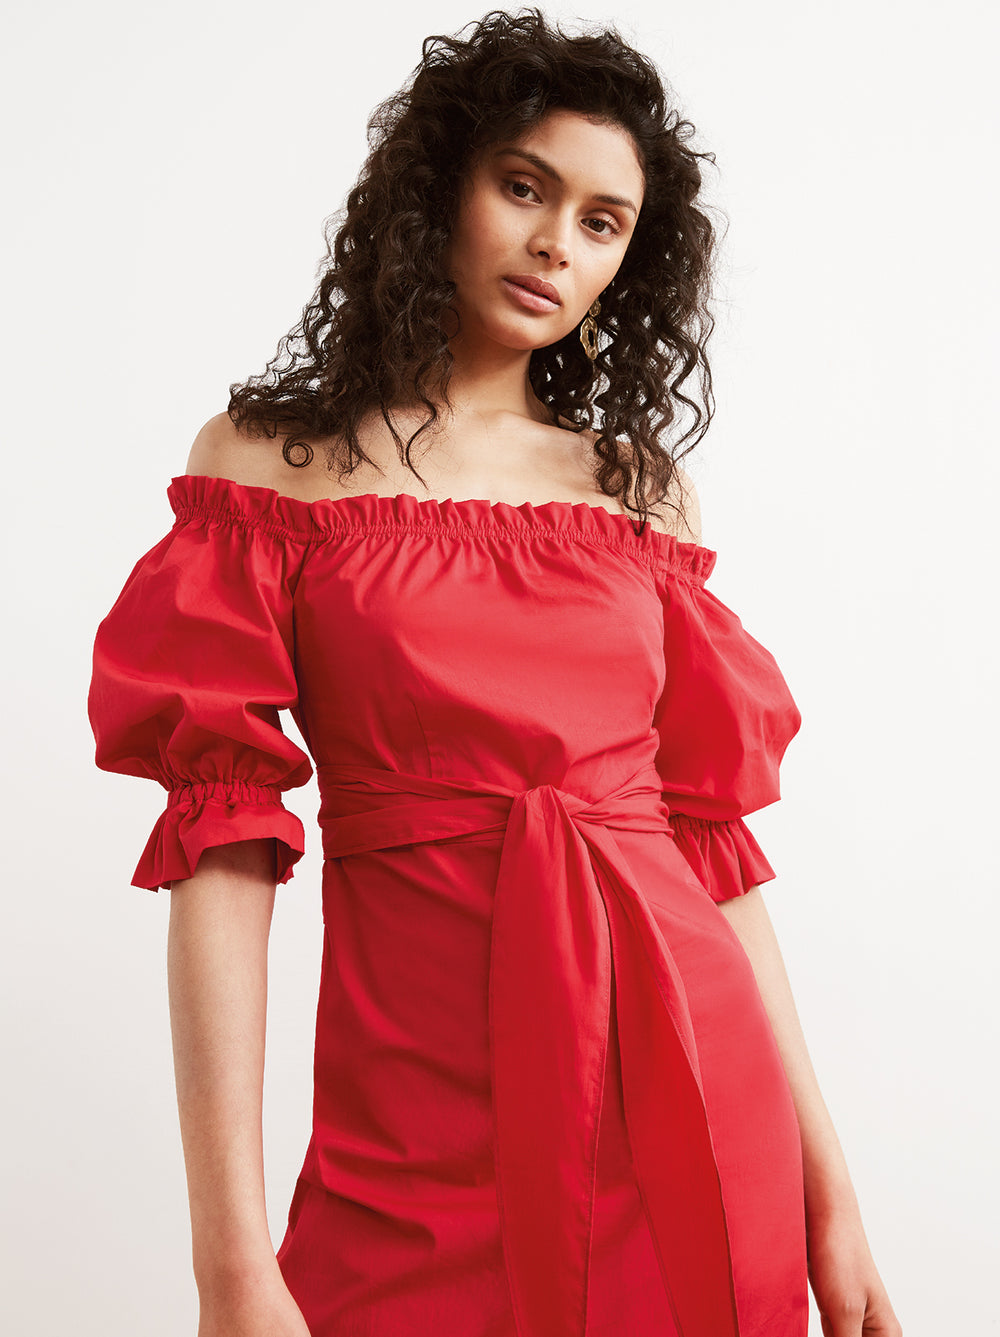 Cora Red Cotton Bardot Summer Dress by KITRI Studio